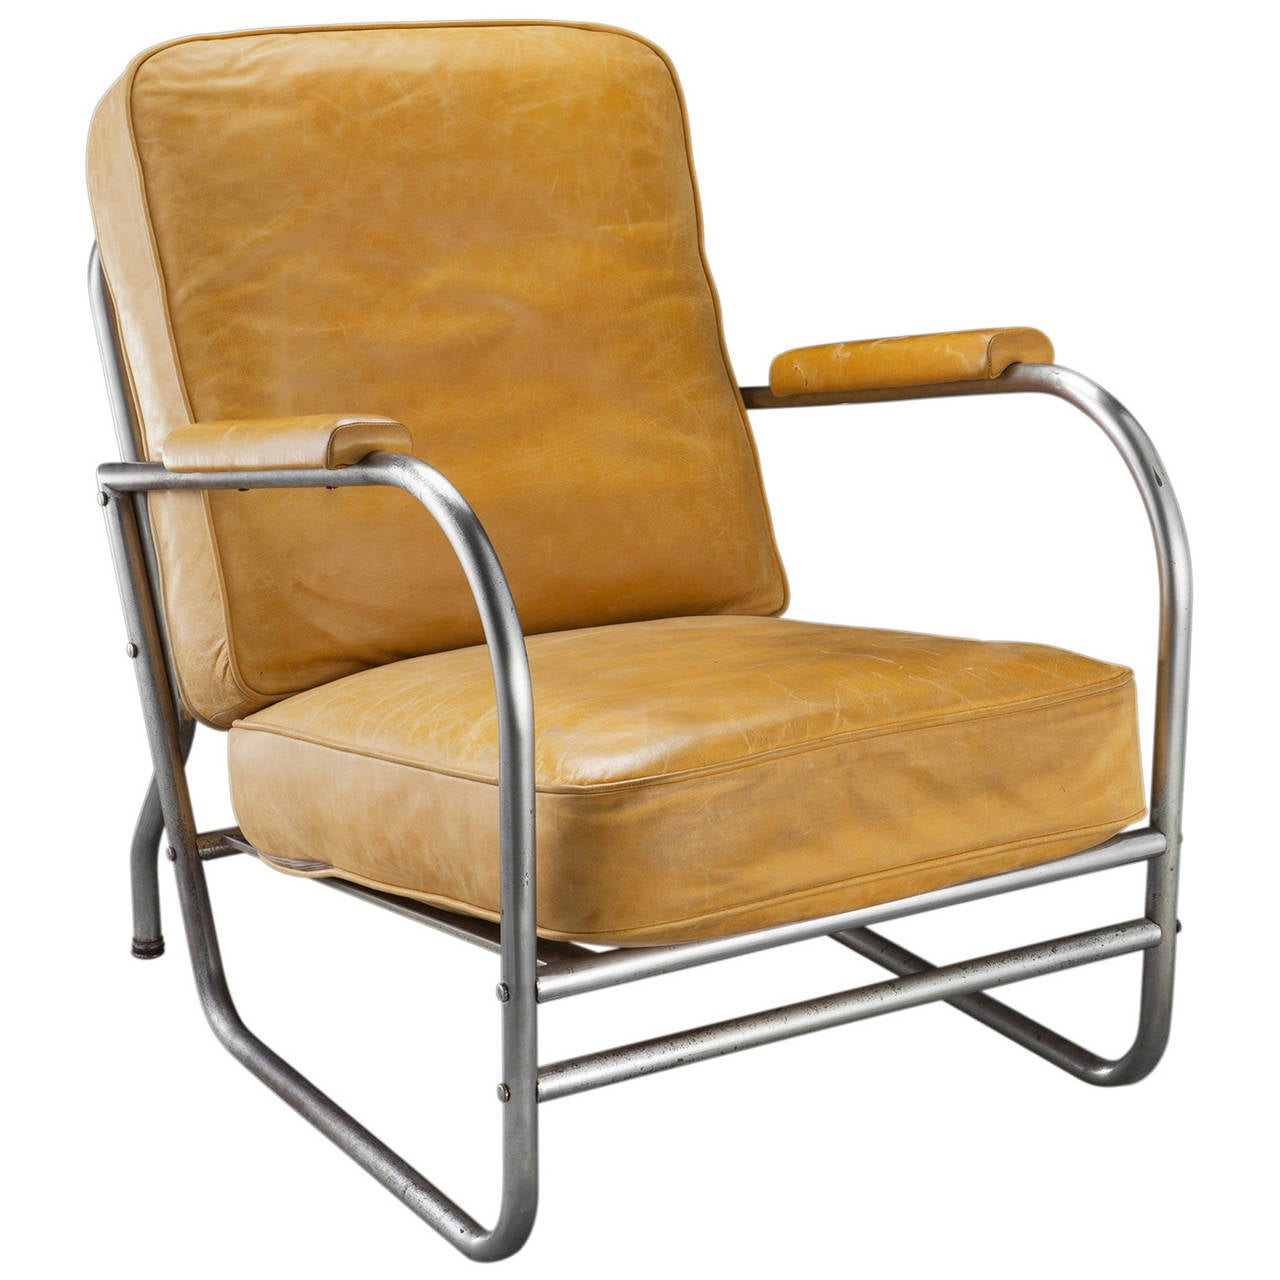 Yellow Leather And Chrome Armchair At 1stdibs